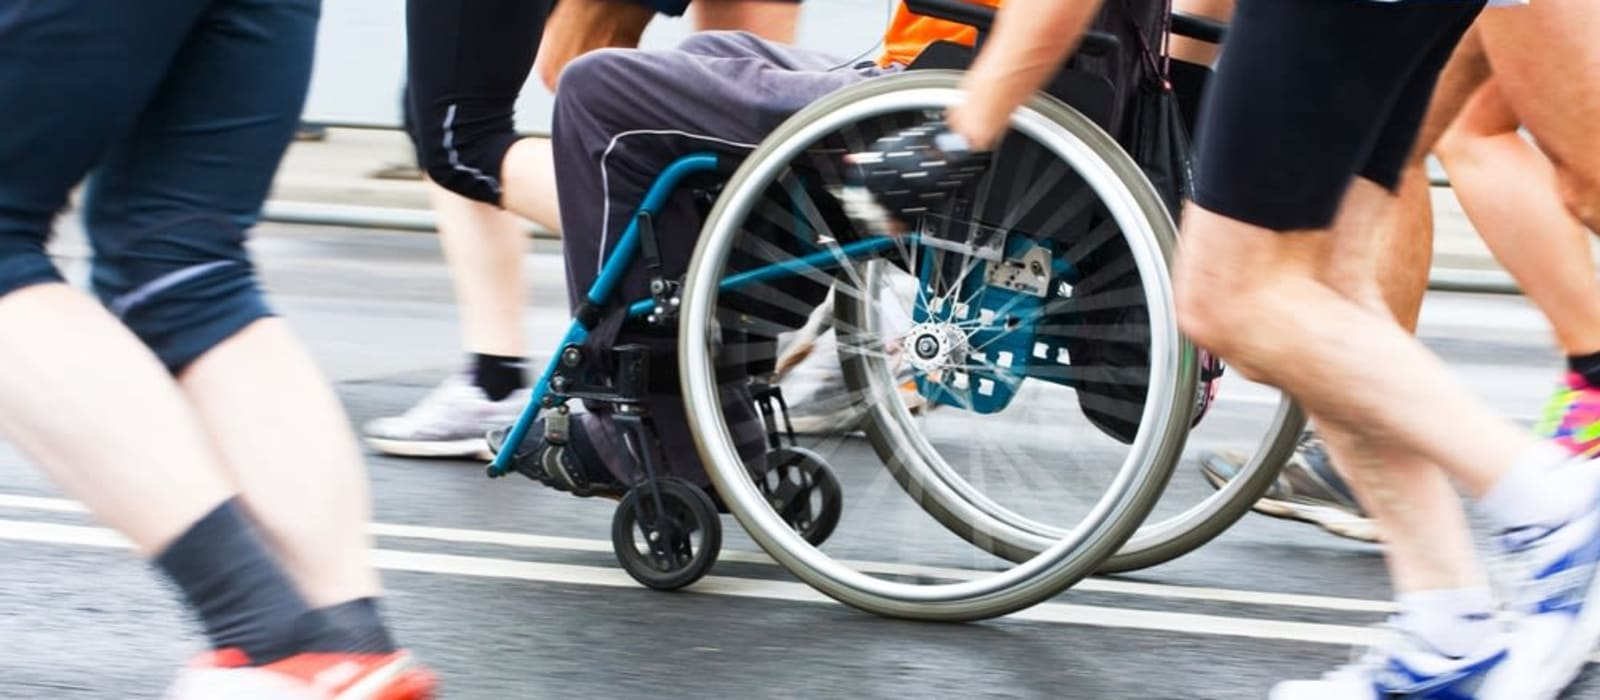 New Year Message to Supporters from Stoke Mandeville Spinal Research